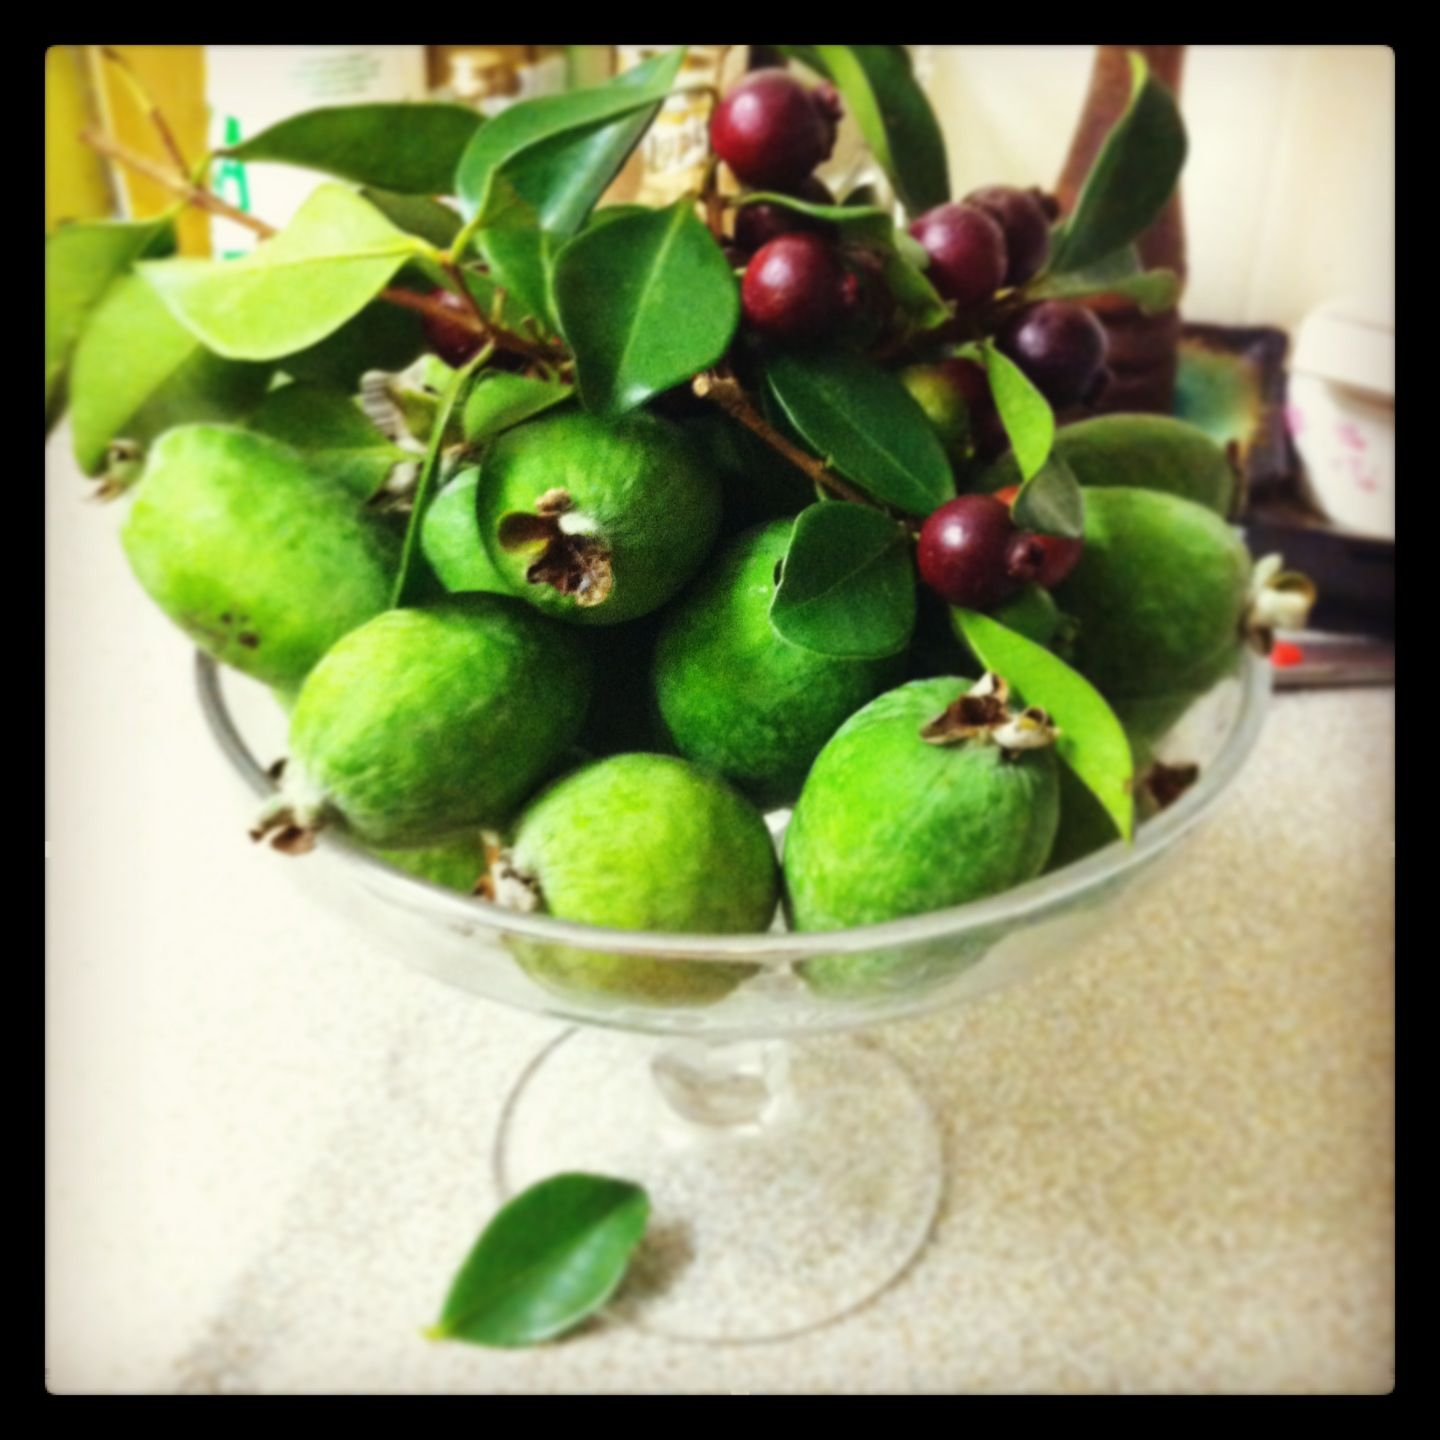 Feijoas - they smell so perfumed and divine